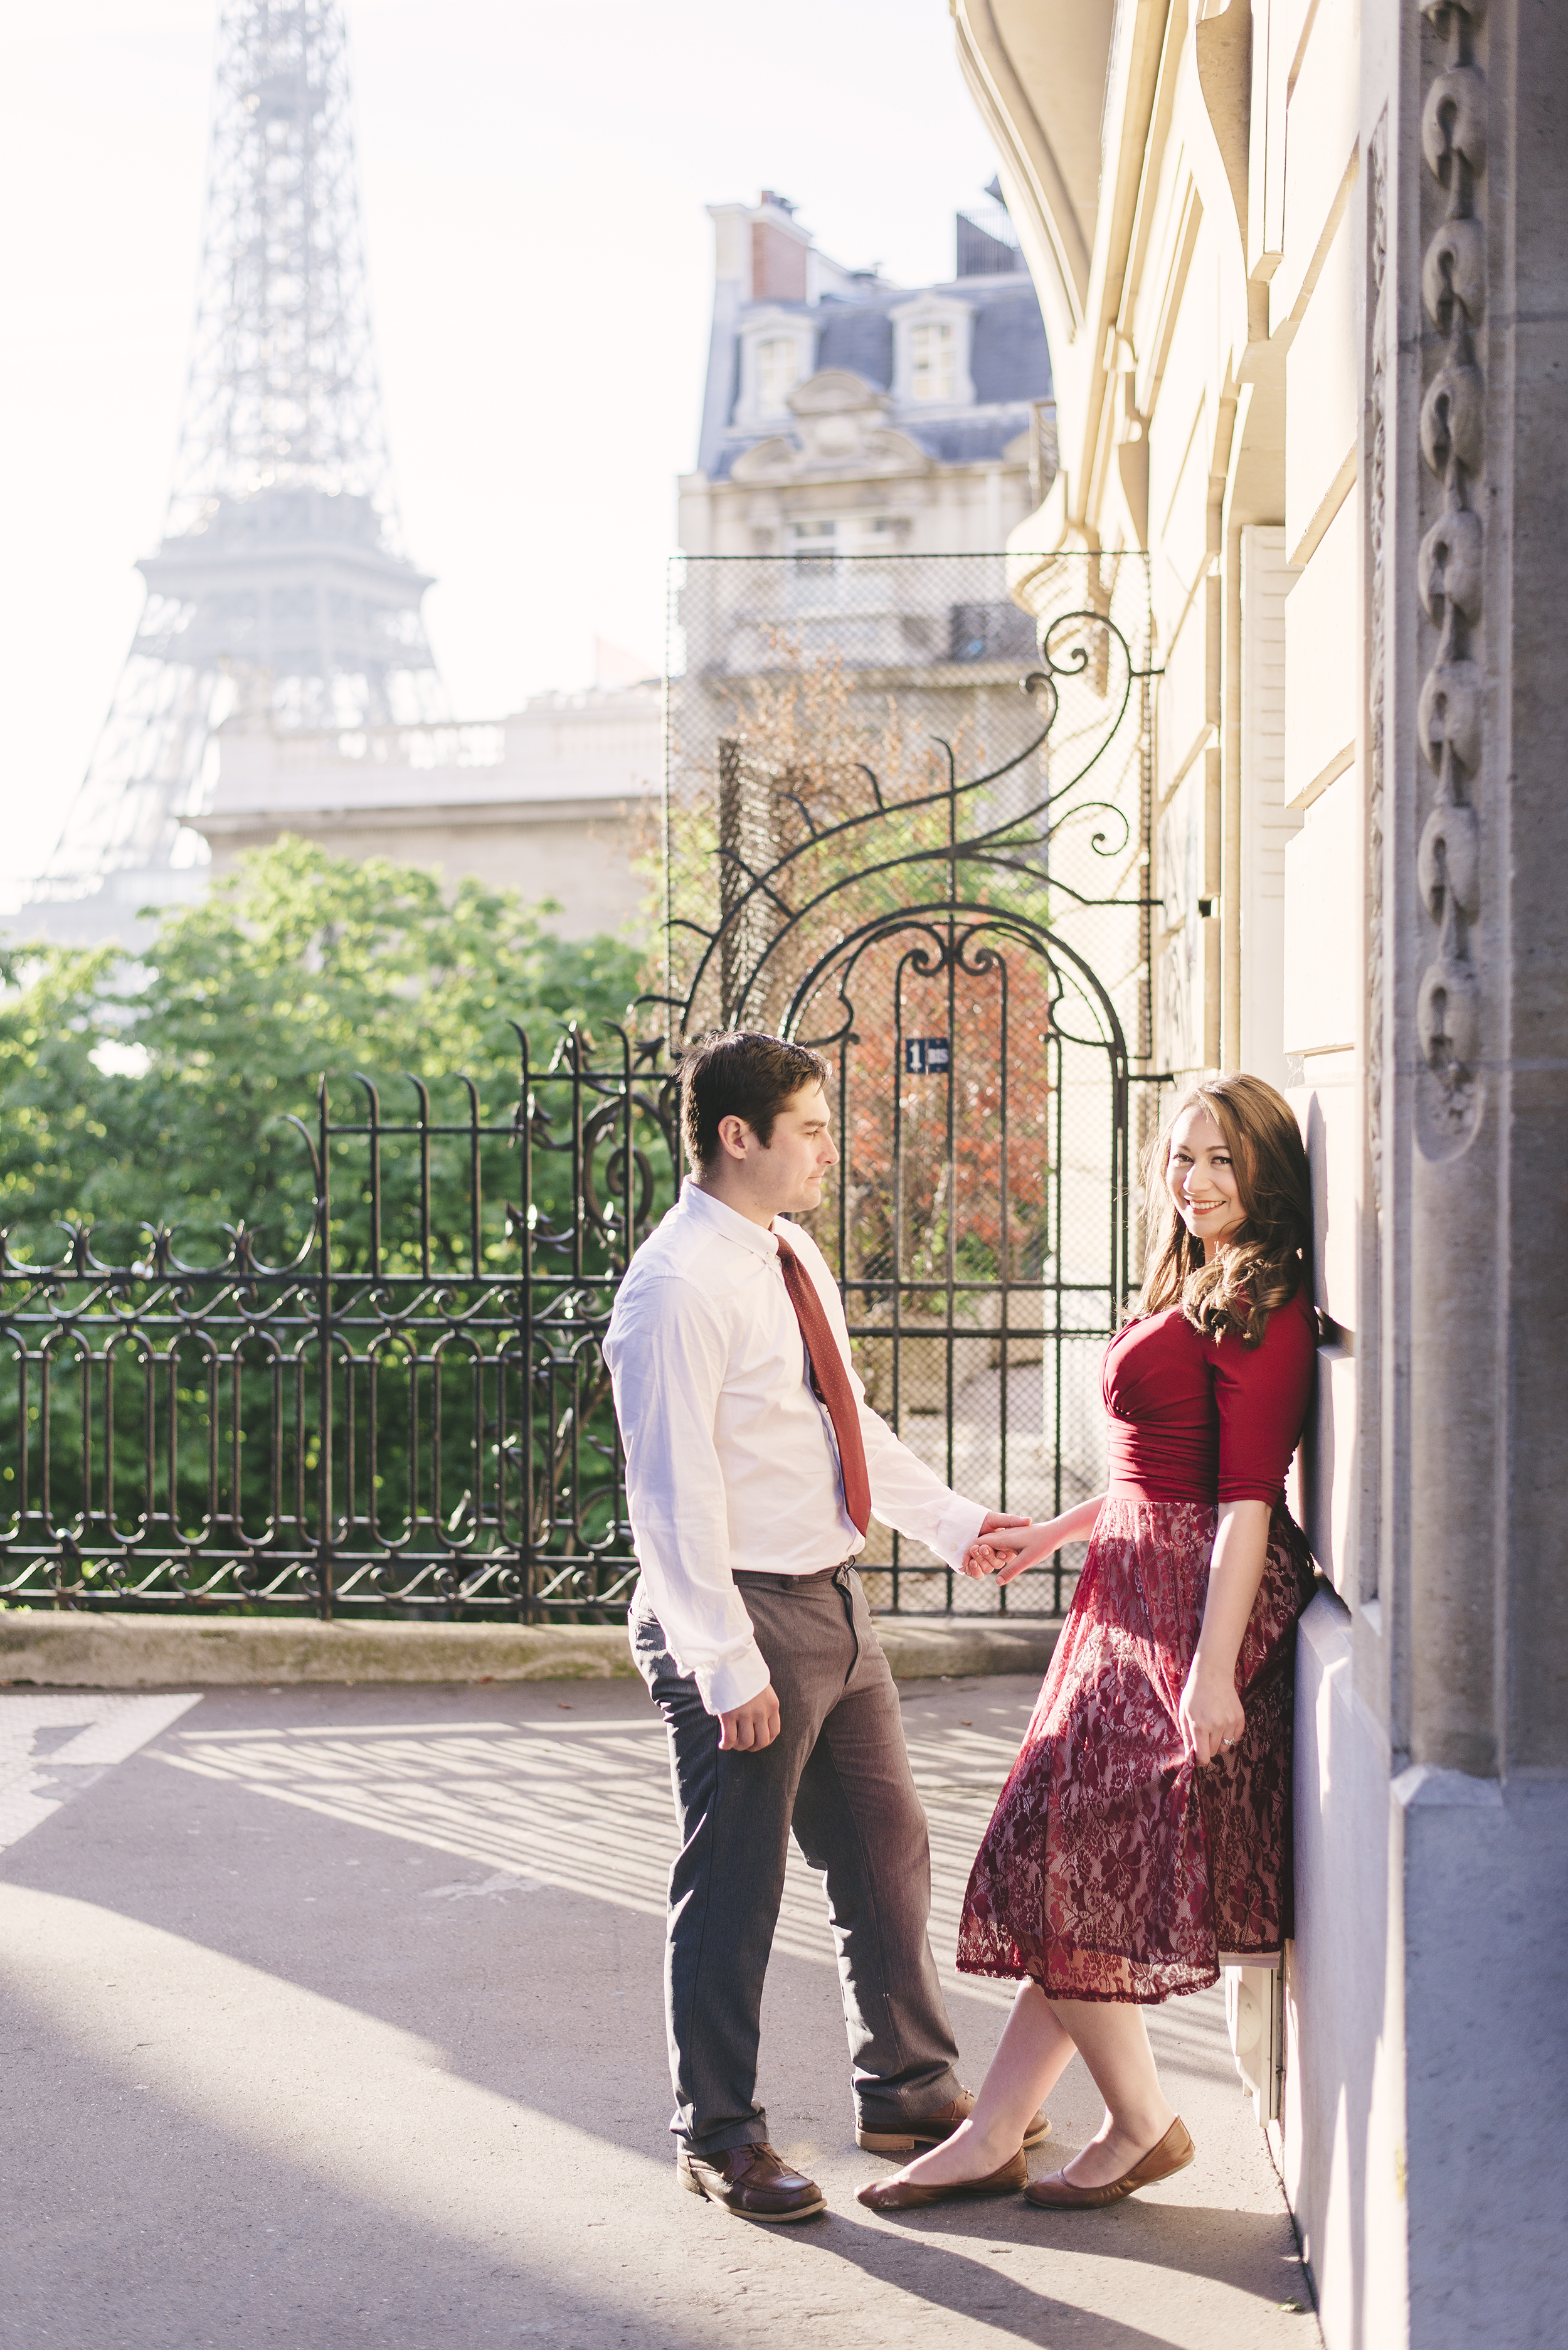 Couple-photoshoot-Anniversary-Paris-Eiffel-Tower-Trocadero083.jpg